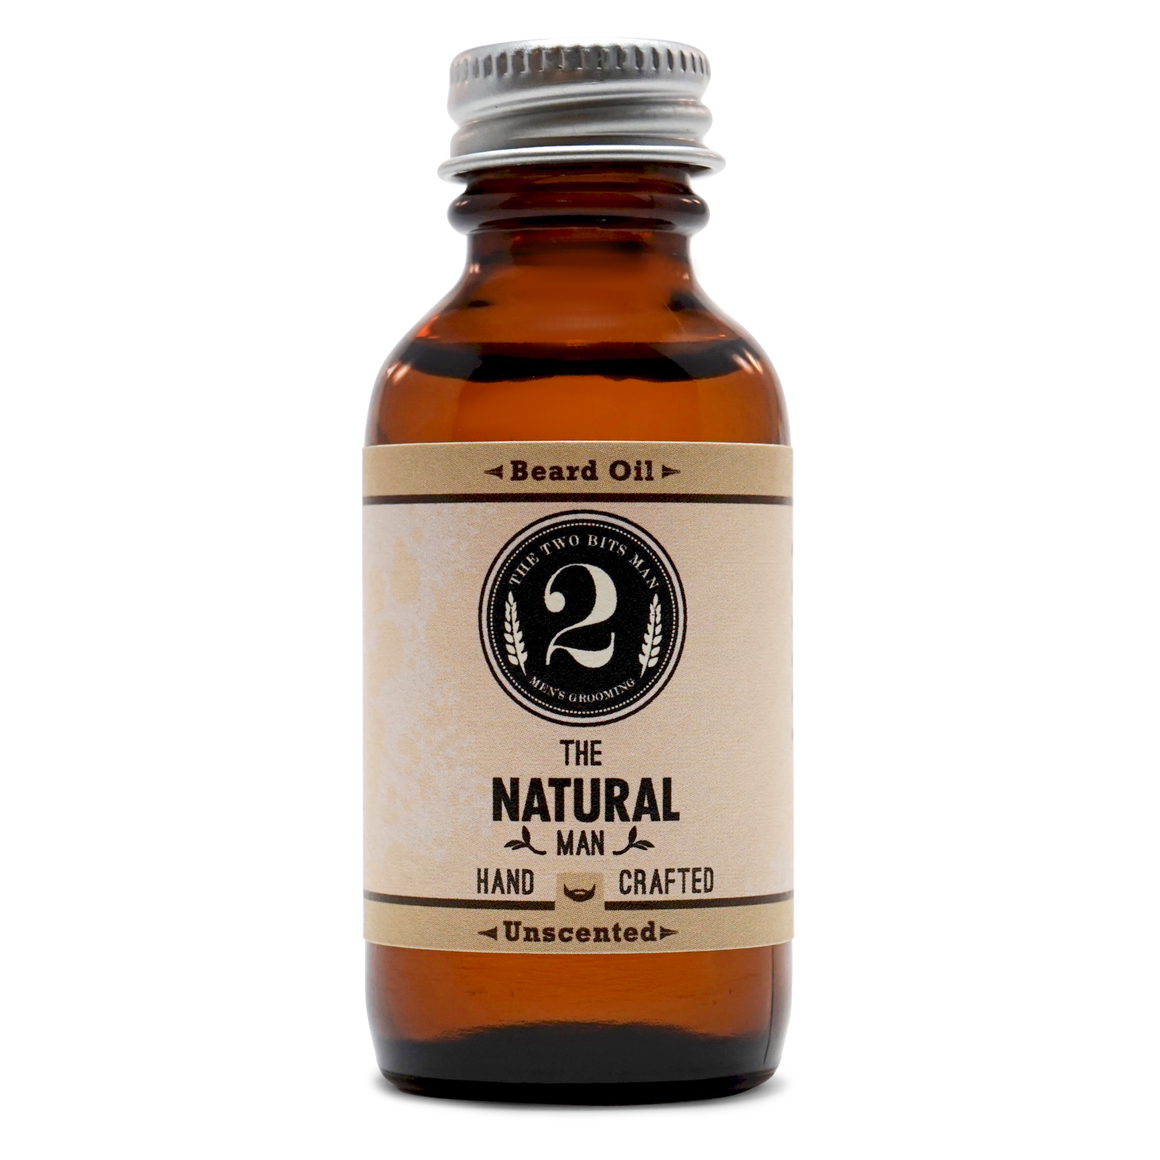 The Natural - Beard Oil